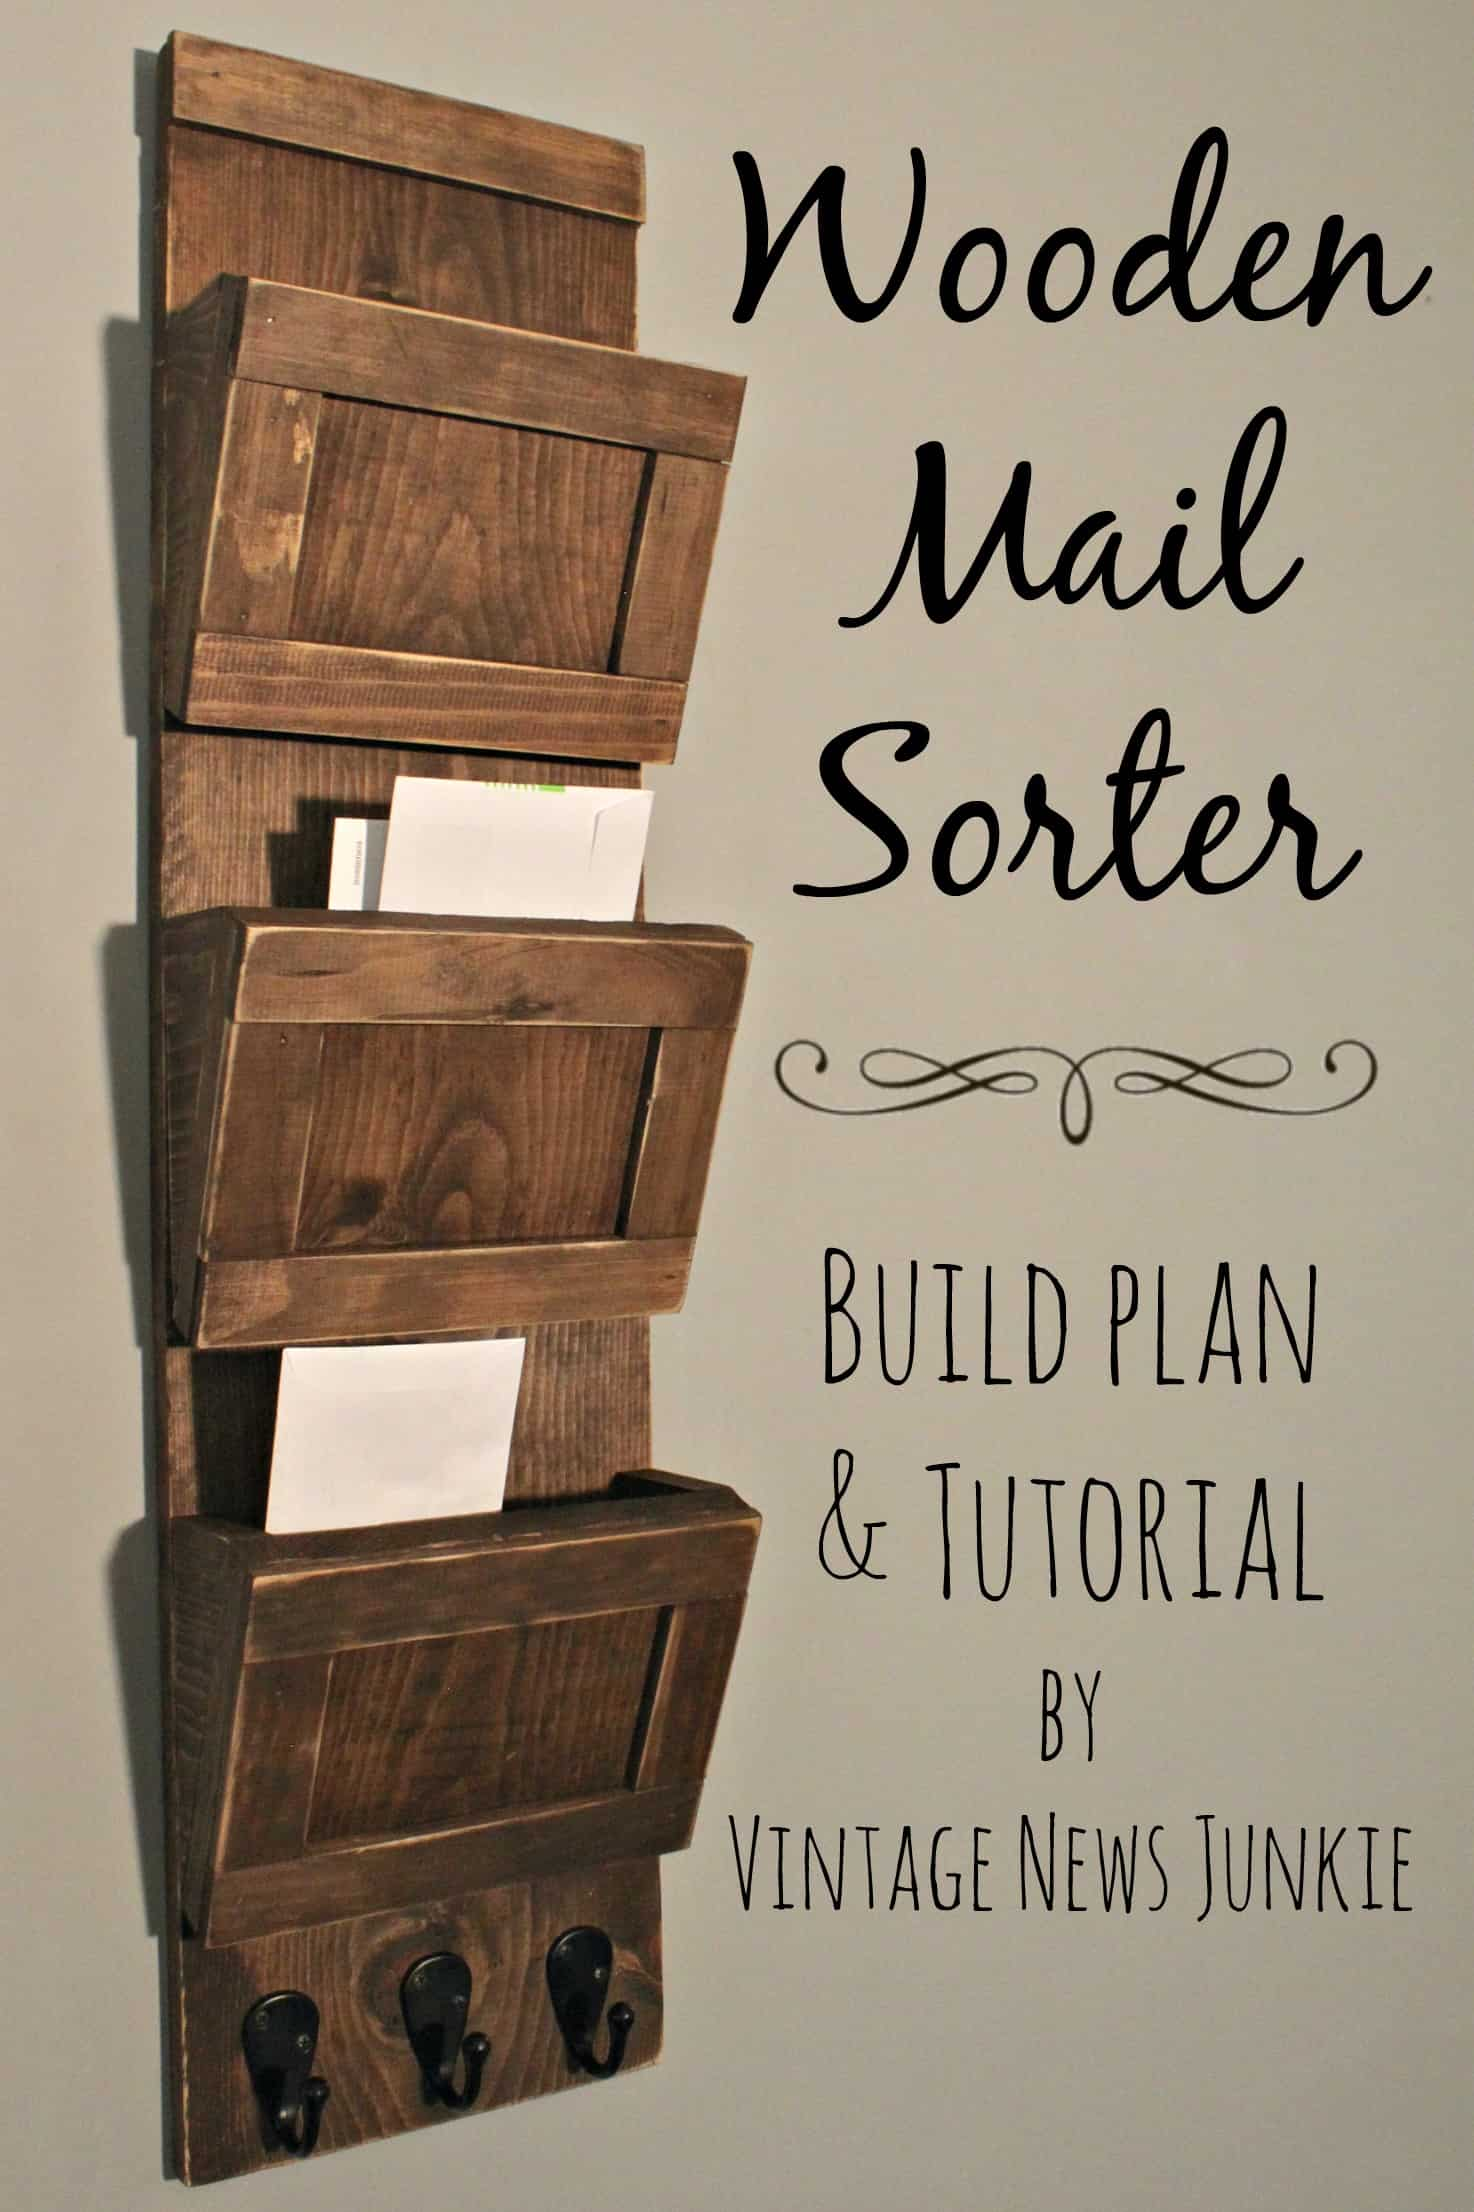 Rustic wooden mail sorter